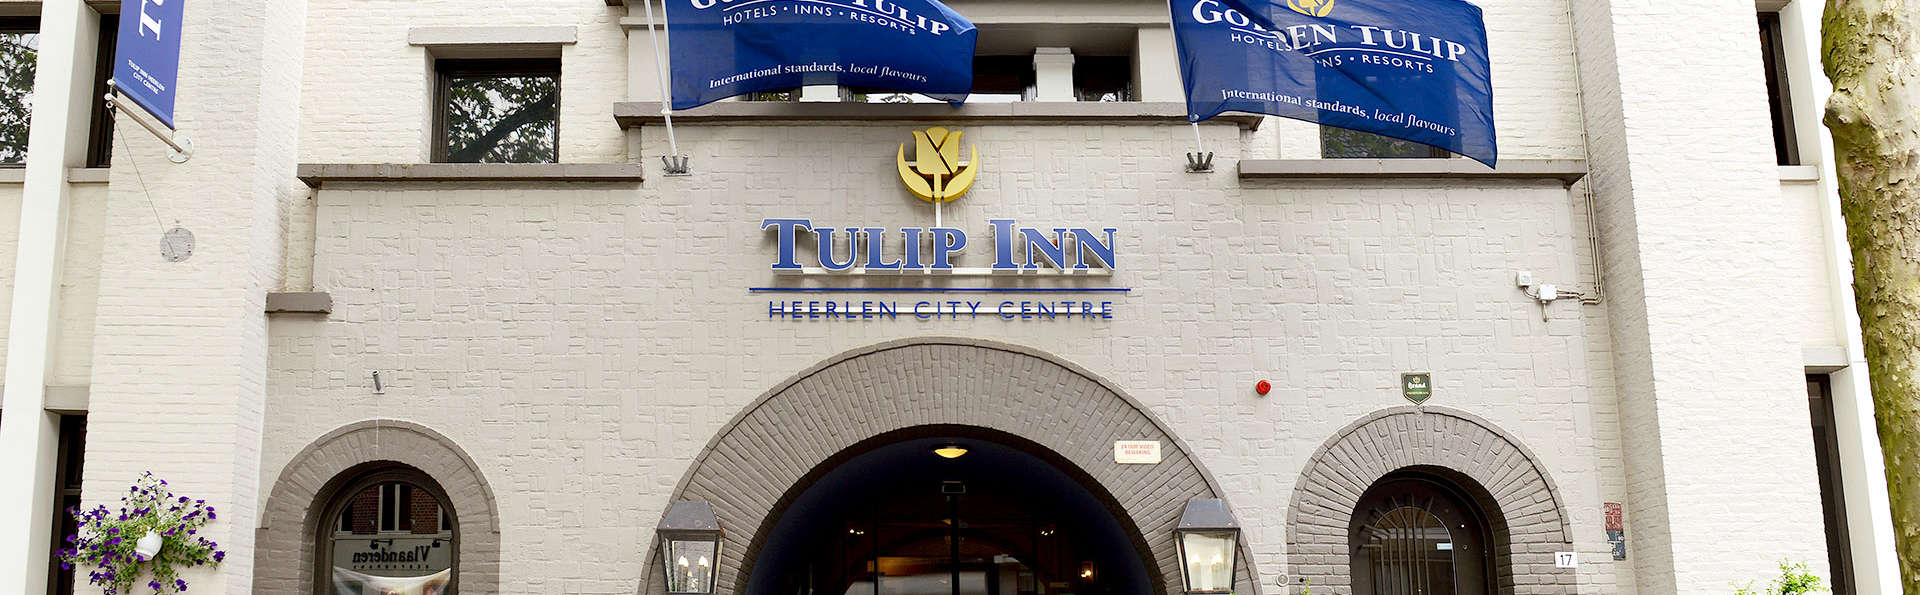 Tulip Inn Heerlen City Centre - EDIT_NEW_FRONT2.jpg